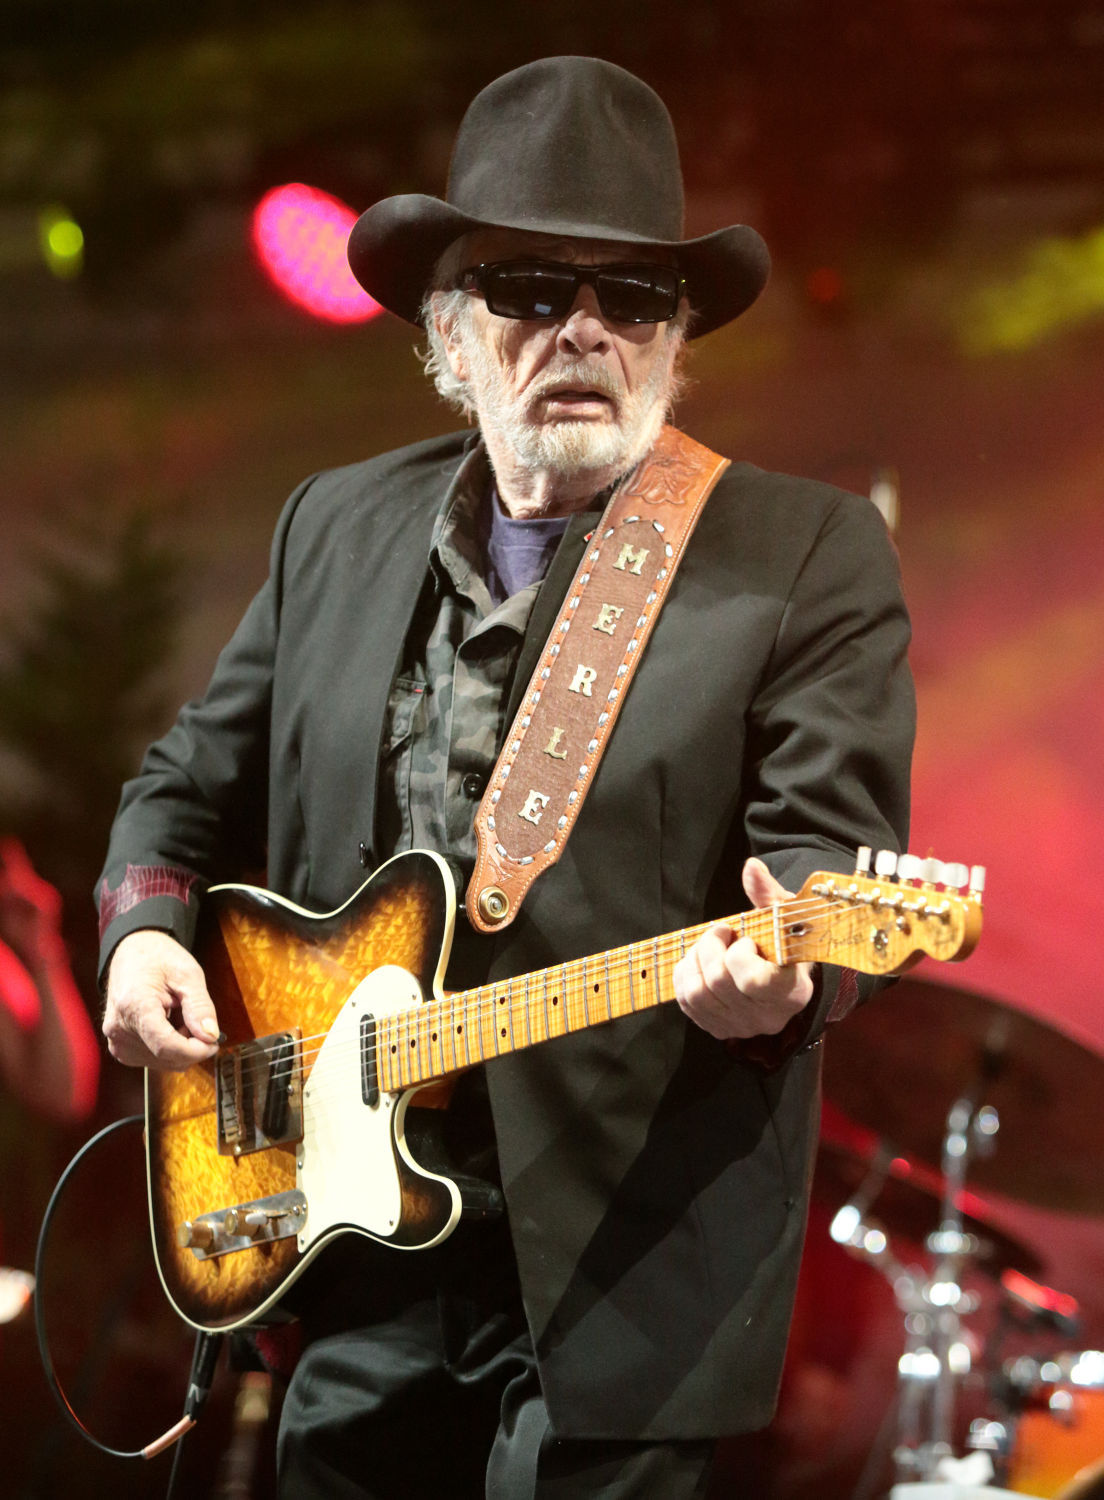 Merle Haggard Performs At The 2015 Big Barrel Country Music Festival Woodlands In Dover Delaware Died Wednesday He Was 79